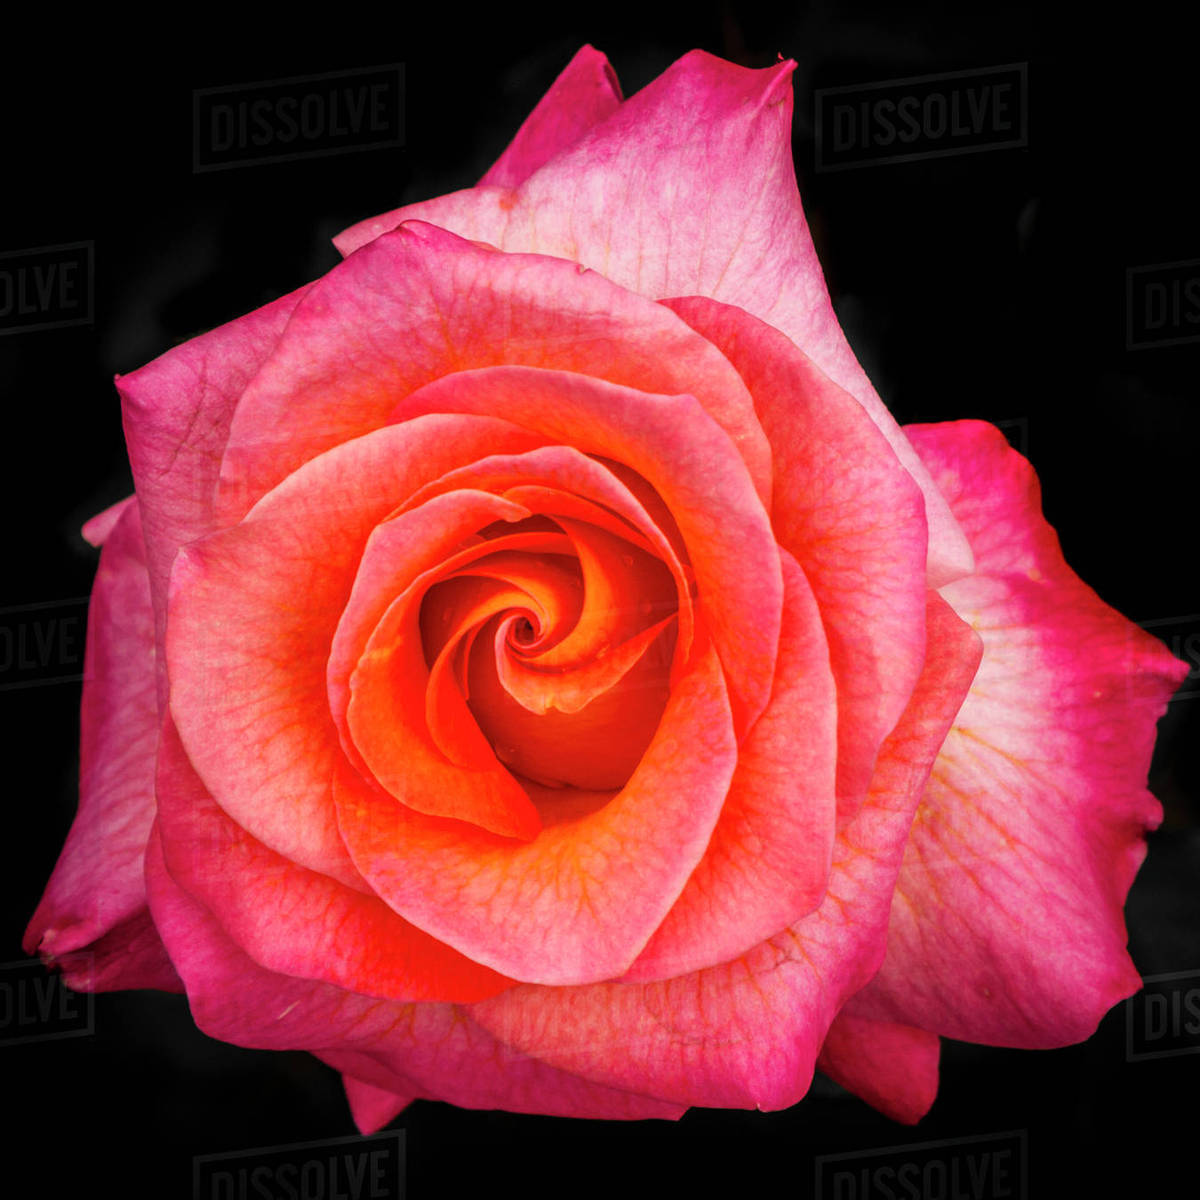 USA, Maryland, Montgomery County. Mardi Gras floribunda rose at Brookside Gardens. Rights-managed stock photo